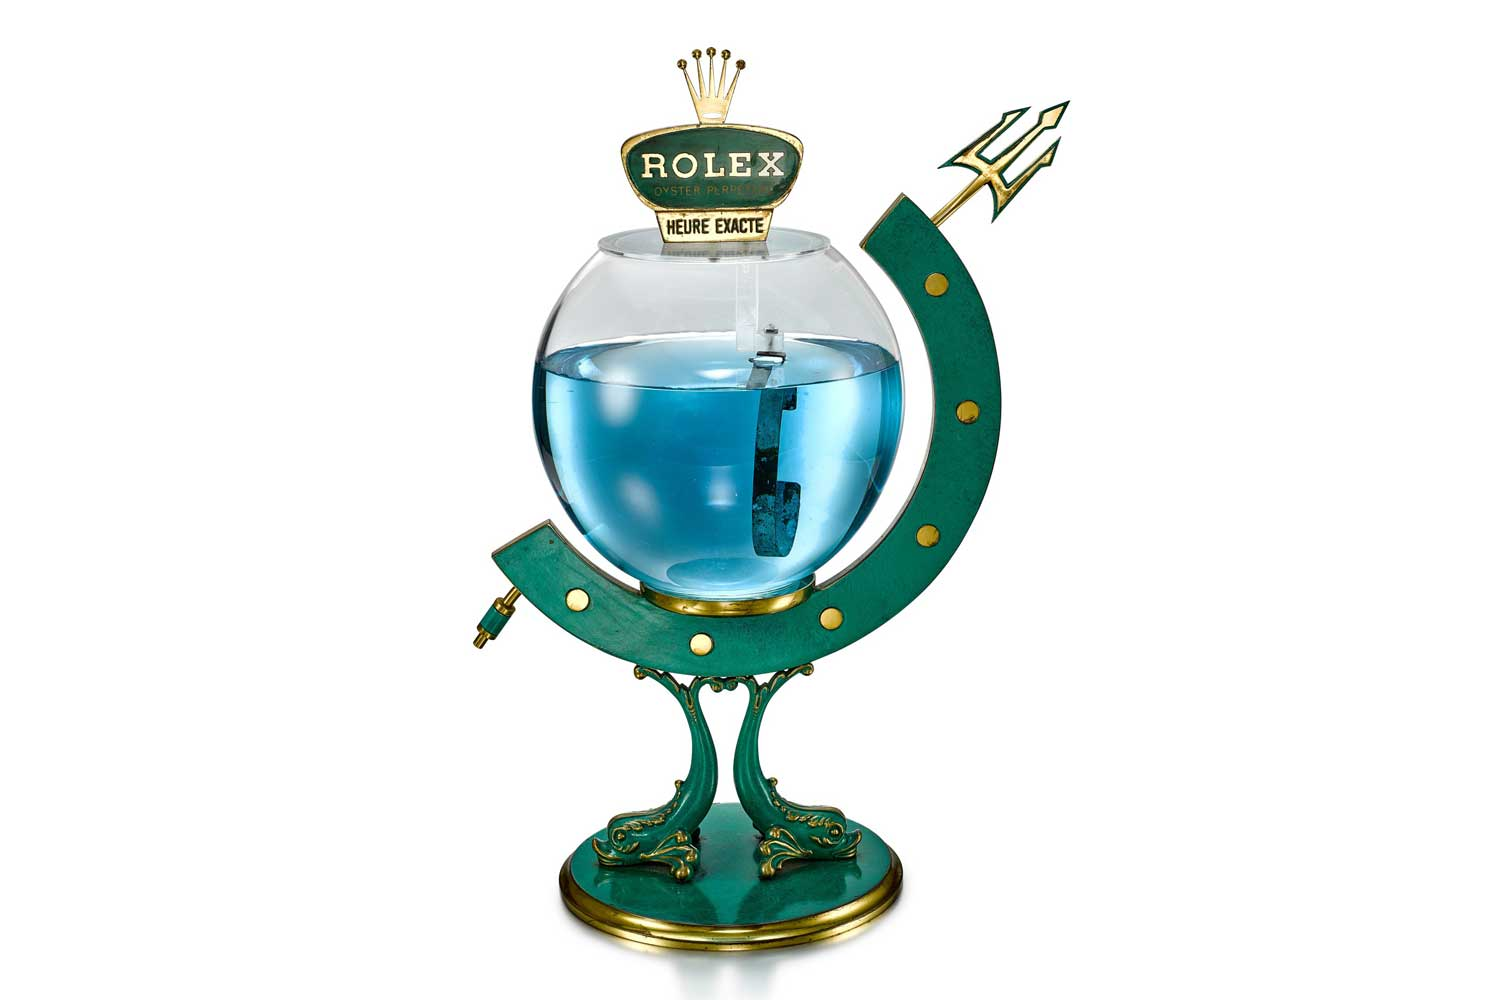 Lot 8126: Rolex - The trident fish bowl, reference 313. A gilt brass and green enamel retailer's window display, circa 1960